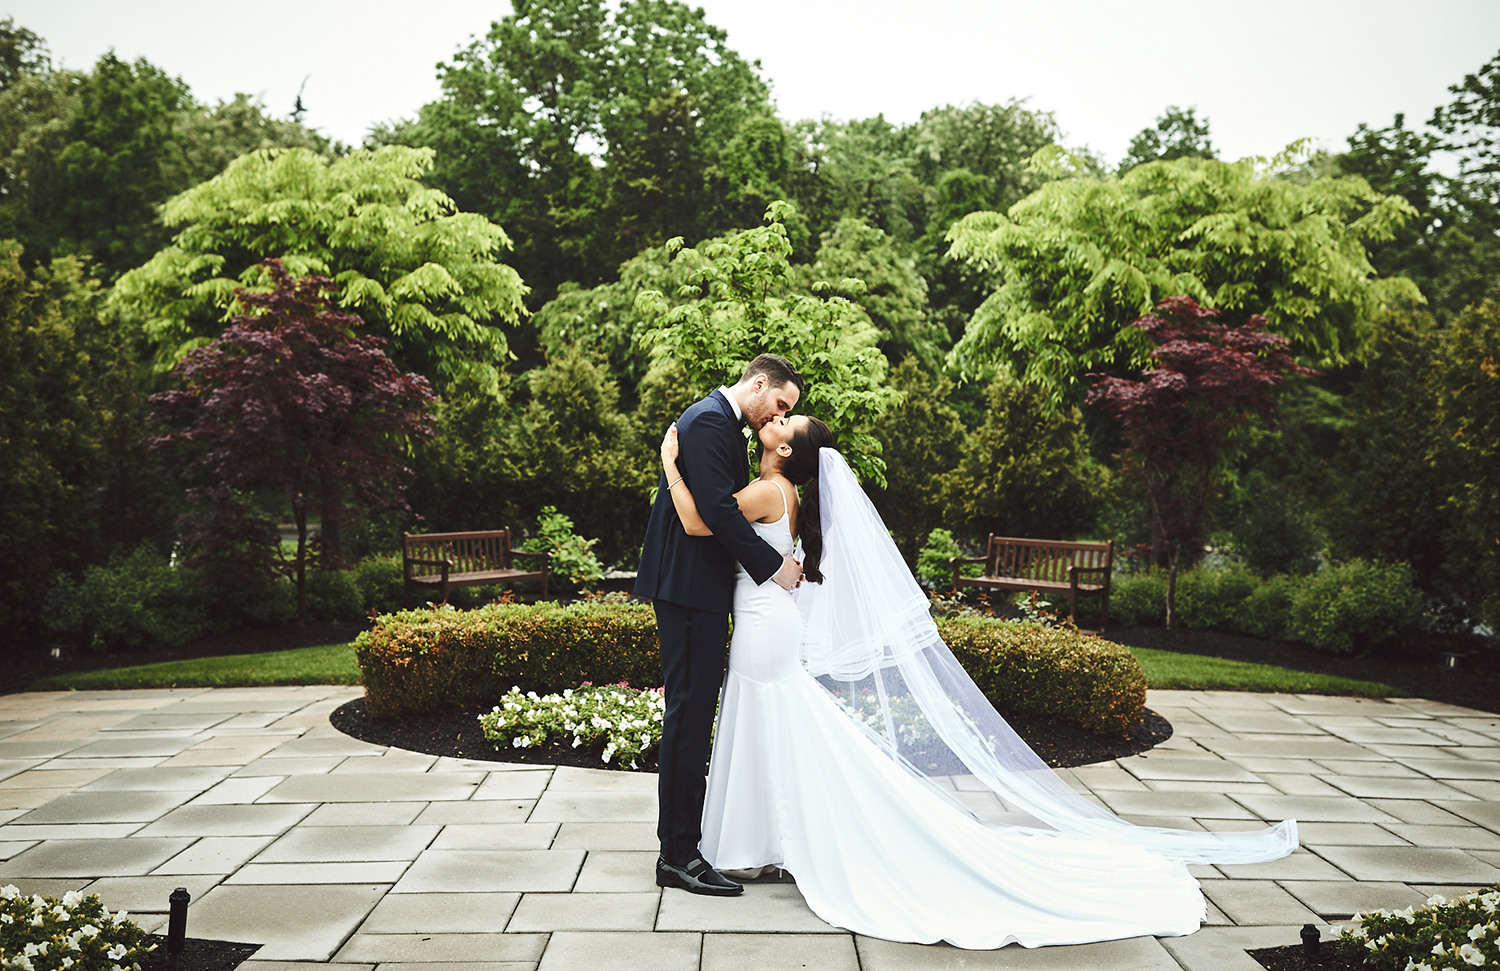 180519_PalaceatSomersetParkWeddingPhotography_NJWeddingPhotographer_By_BriJohnsonWeddings_0053.jpg